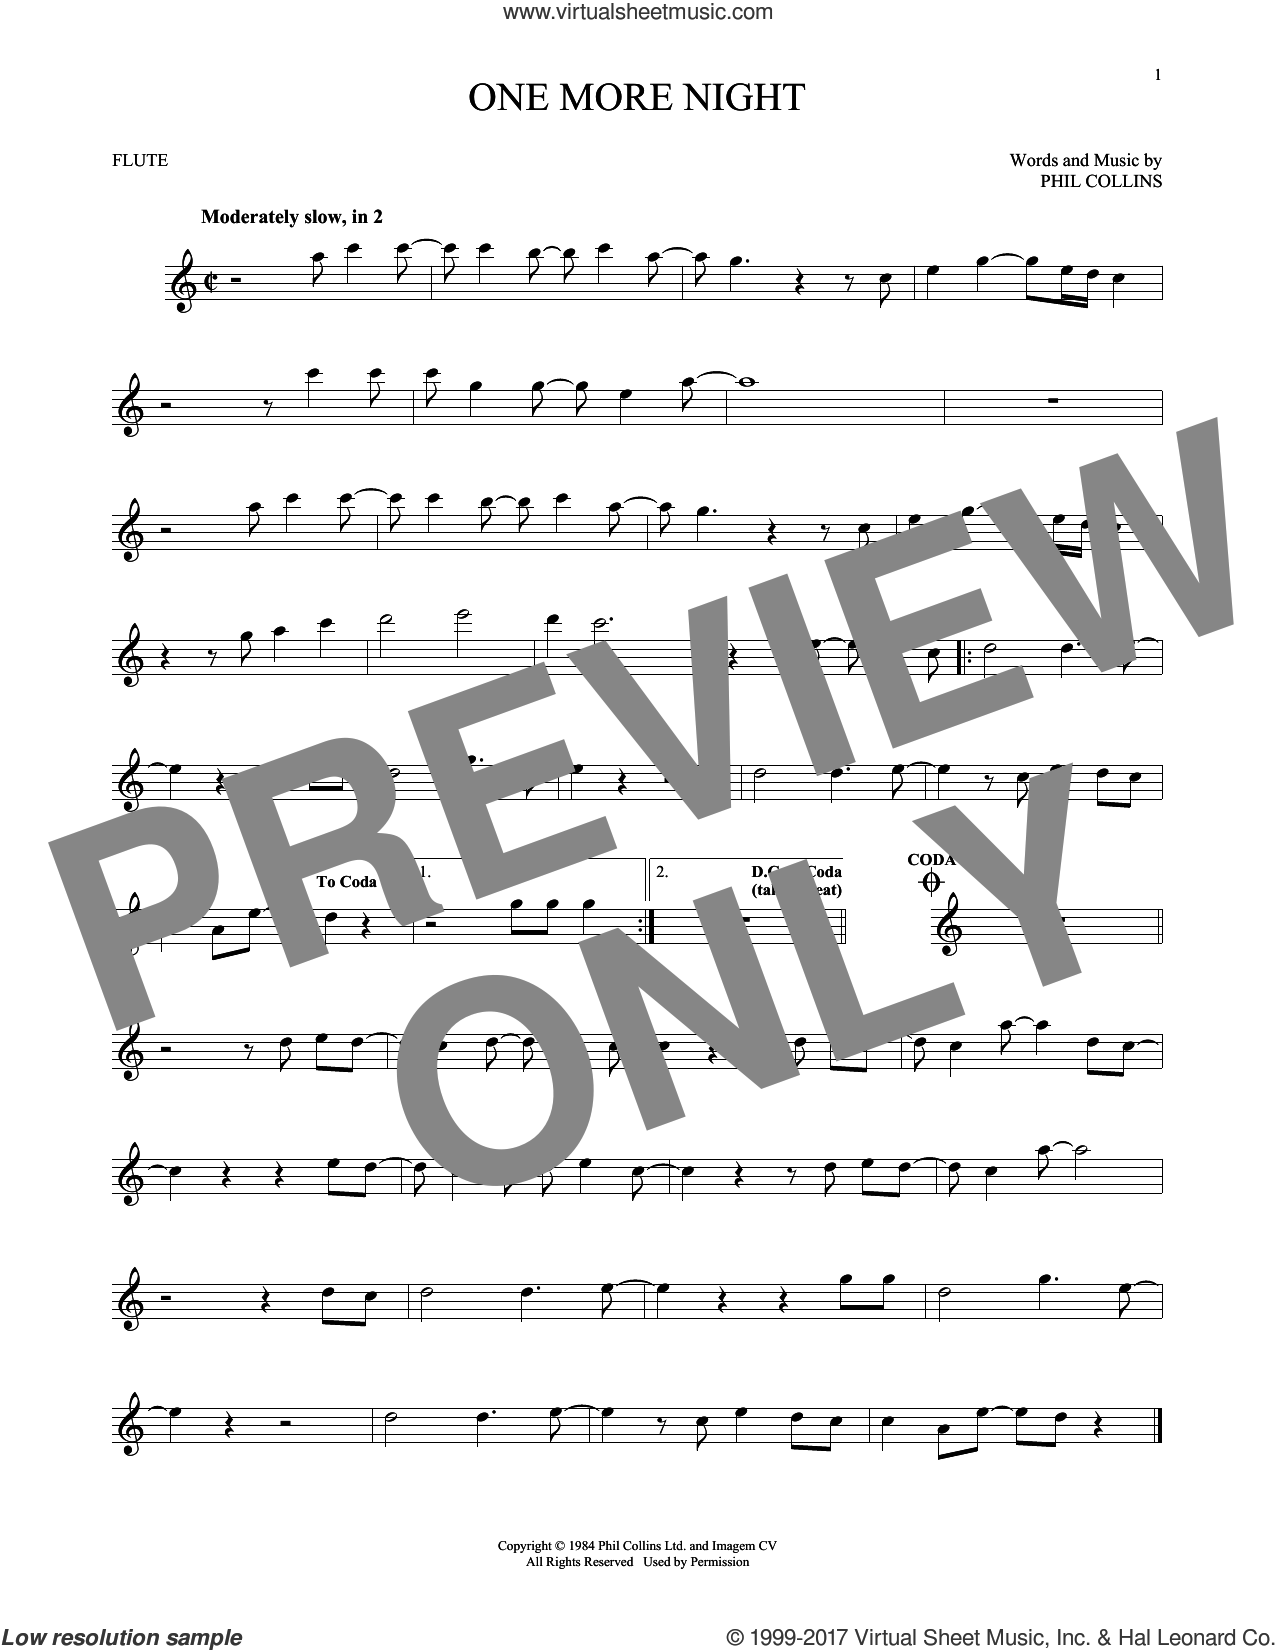 One More Night sheet music for flute solo by Phil Collins, intermediate skill level